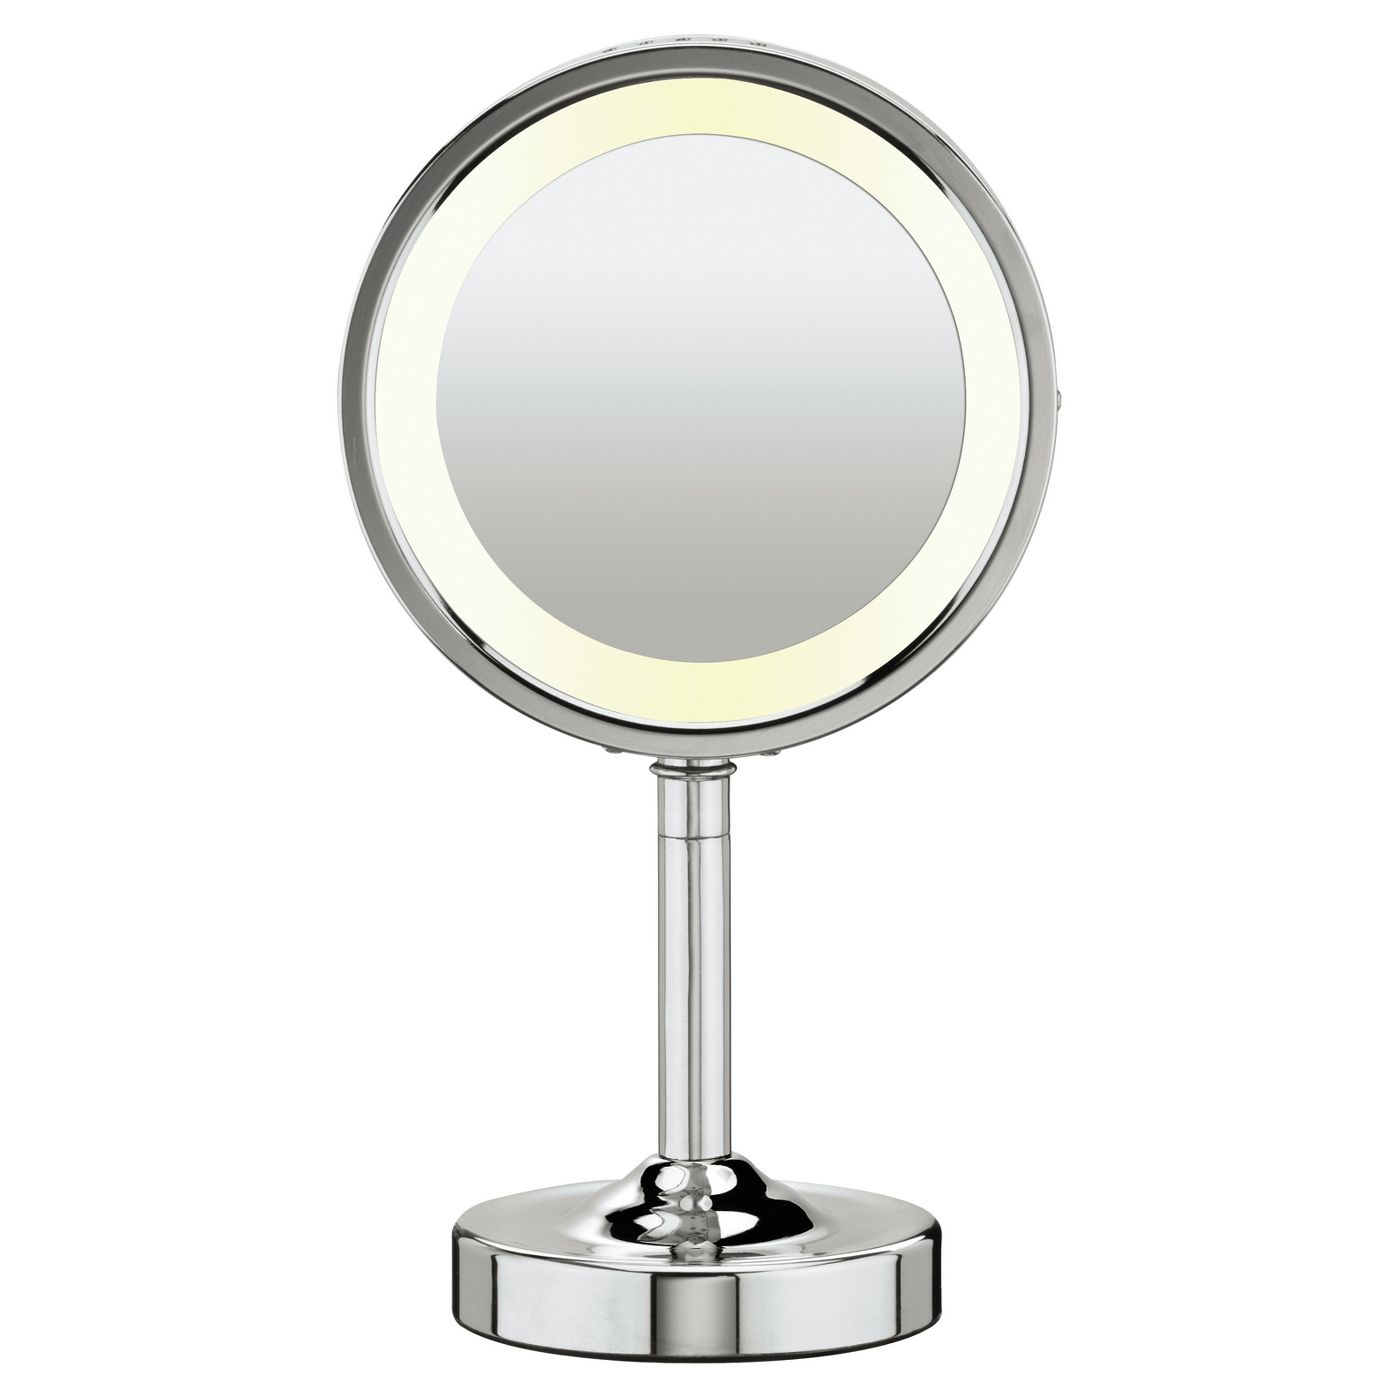 Conair Double-Sided Lighted Makeup Mirror with 5X Magnification - image 1 of 3